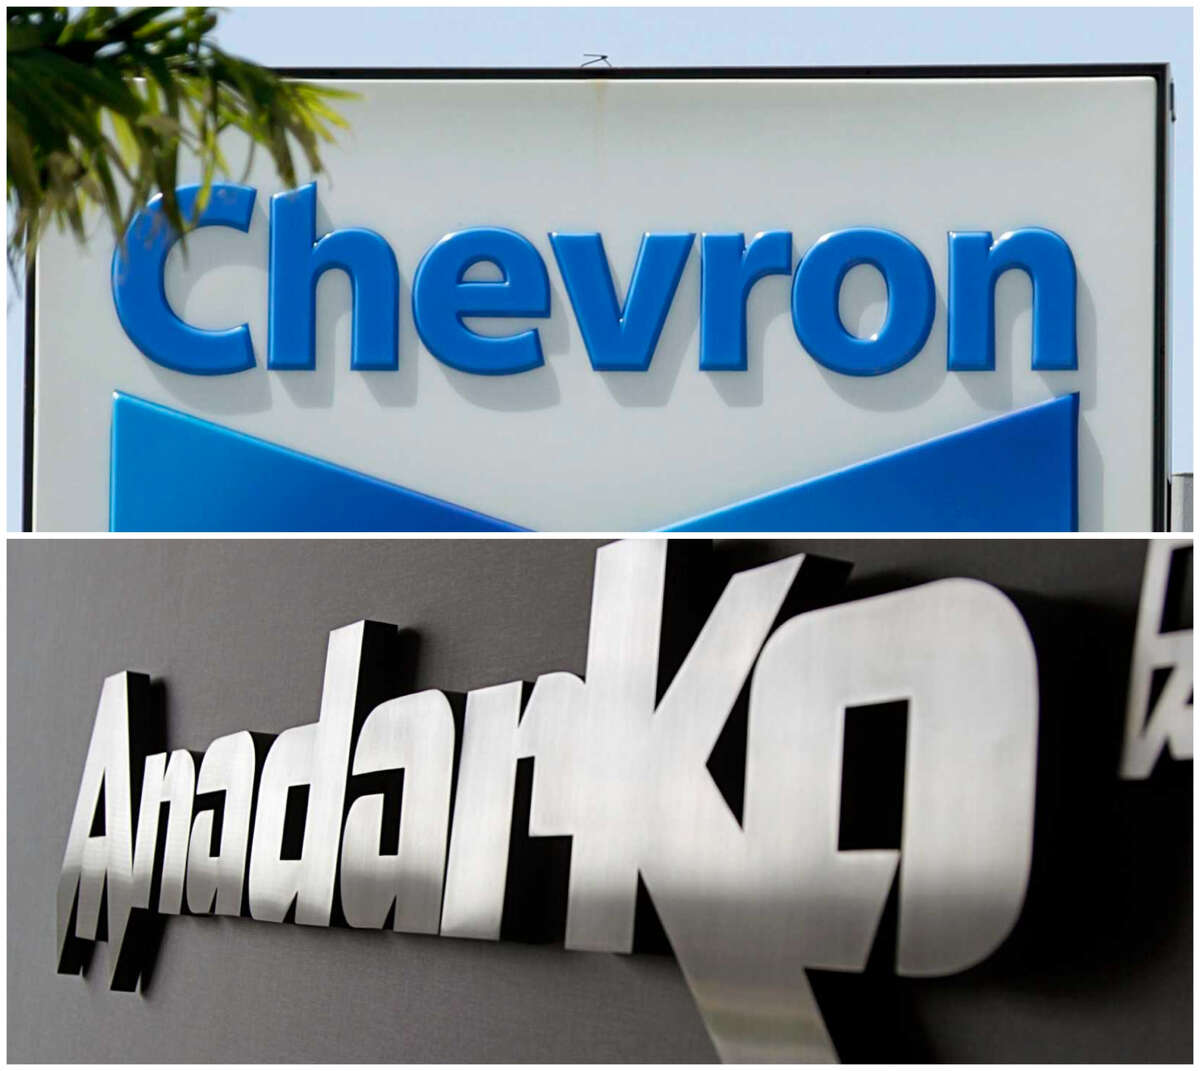 Chevron said on Friday, April 12, 2019, that it will buy Anadarko Petroleum for $33 billion in the biggest industry megadeal in years.